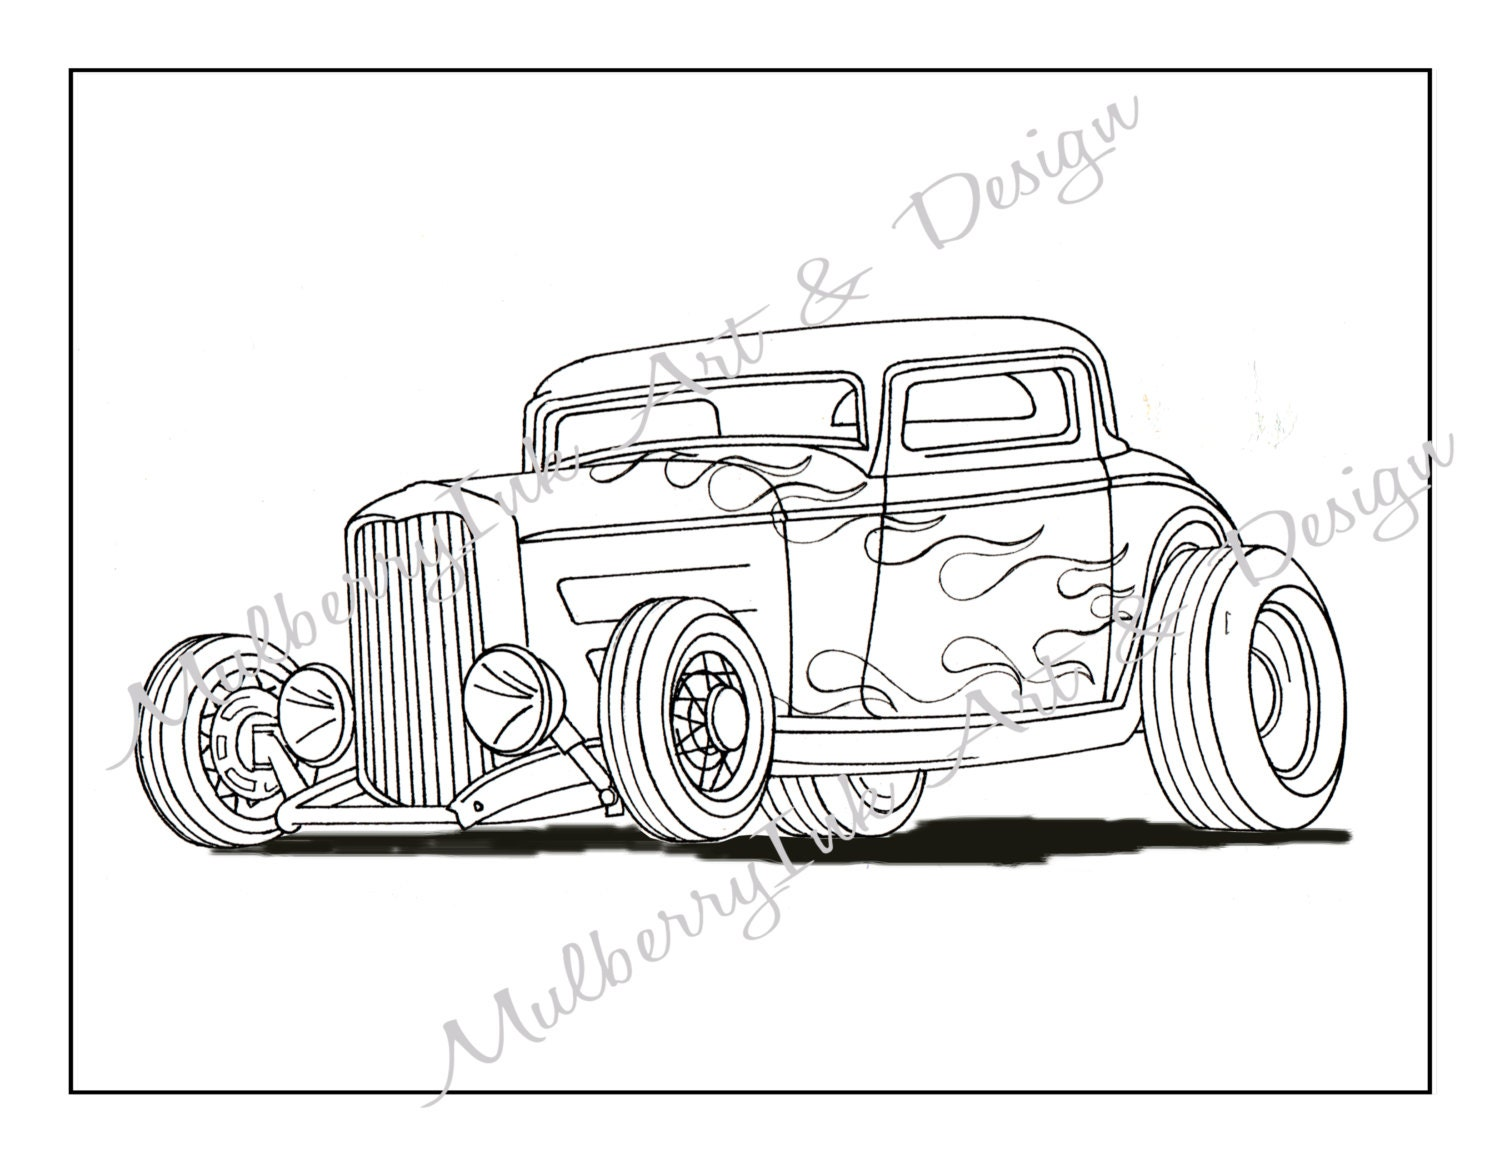 hotrod coloring pages - photo#20